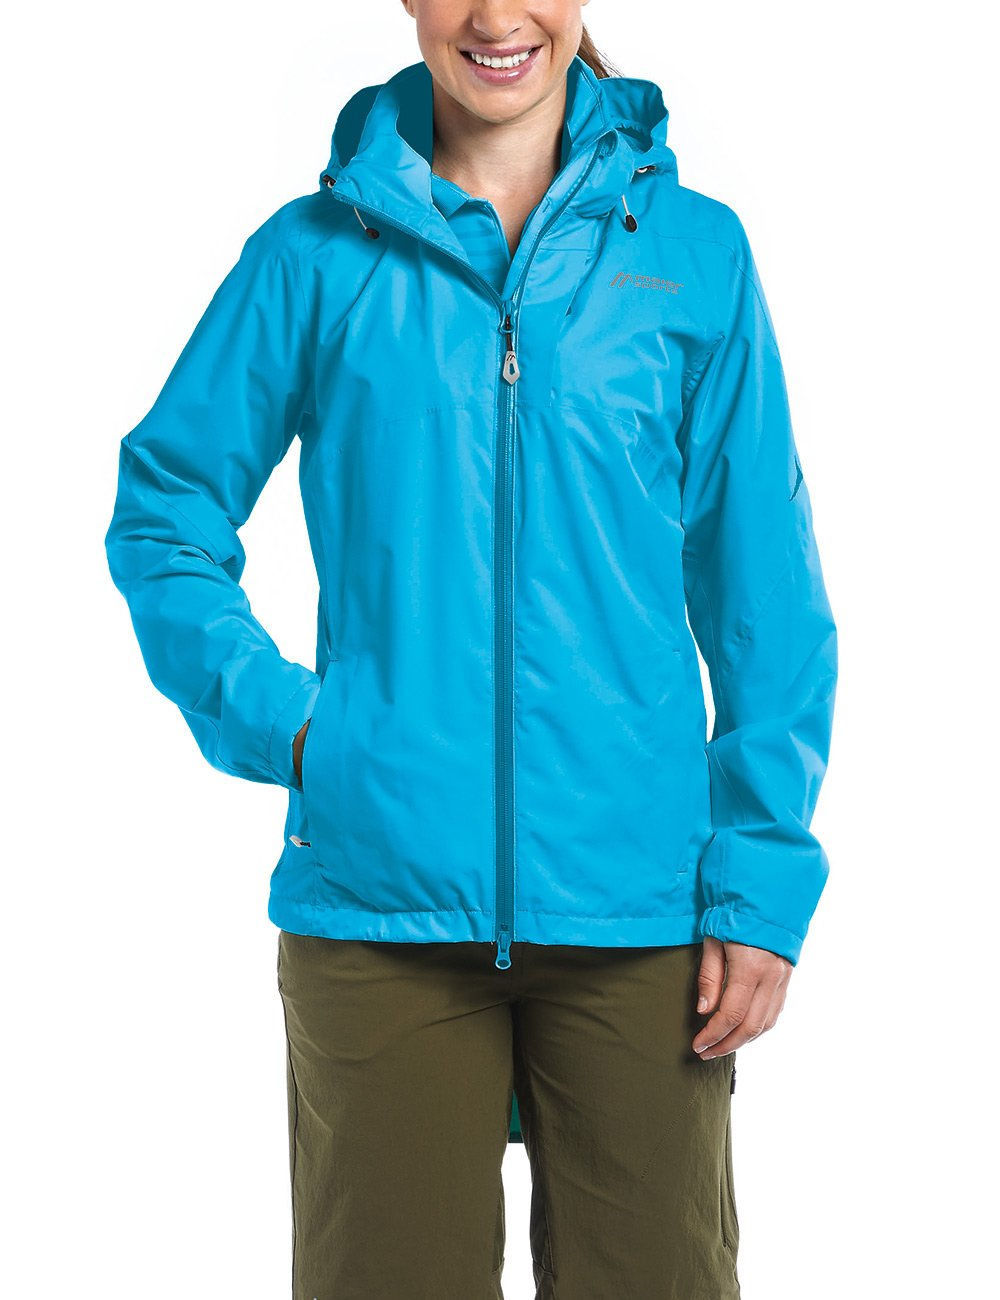 Maier Sports Damen Tour Cycle L Funktionsjacke - hawaiianocean - 40